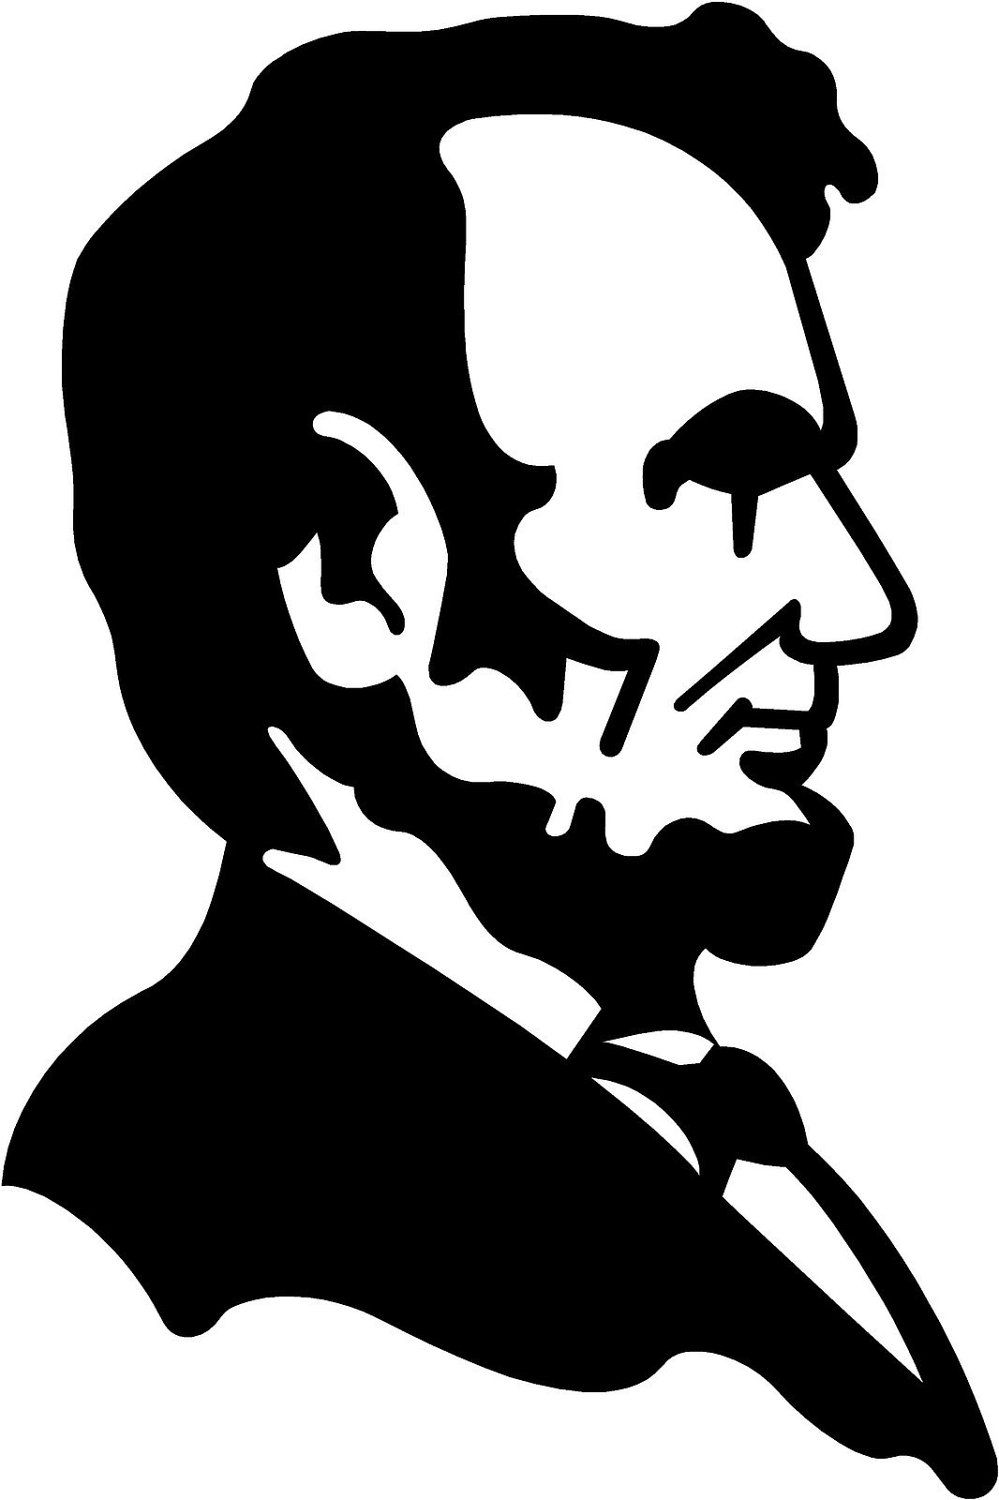 Abe lincoln clipart for kids black and white image royalty free stock printable pictures of abraham lincoln - Google Search | Great Men ... image royalty free stock